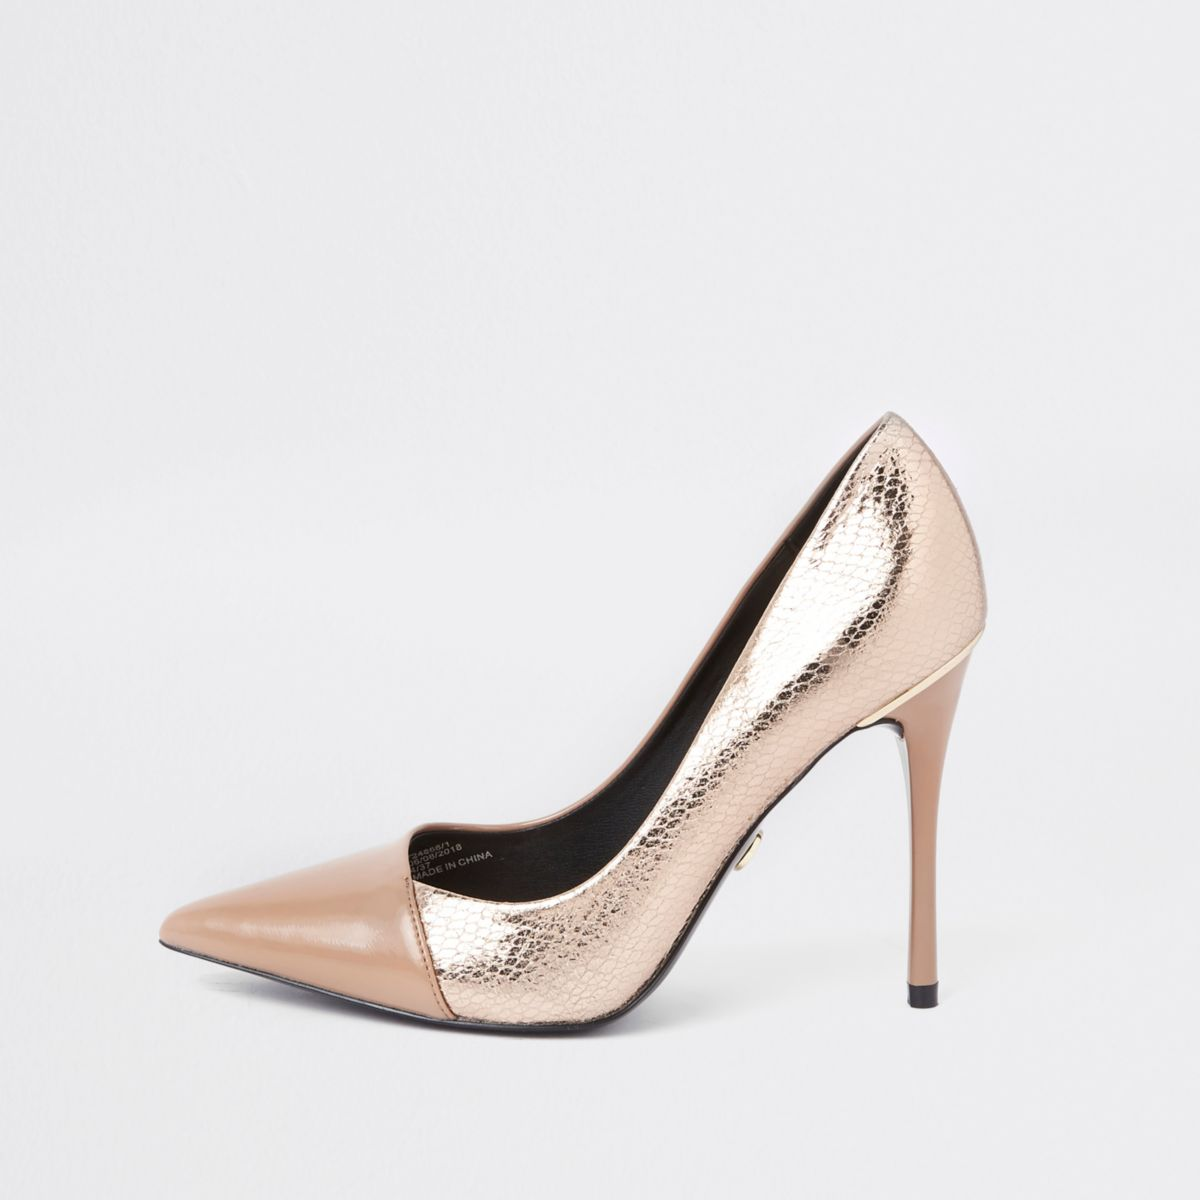 Bright gold wrap around court shoes